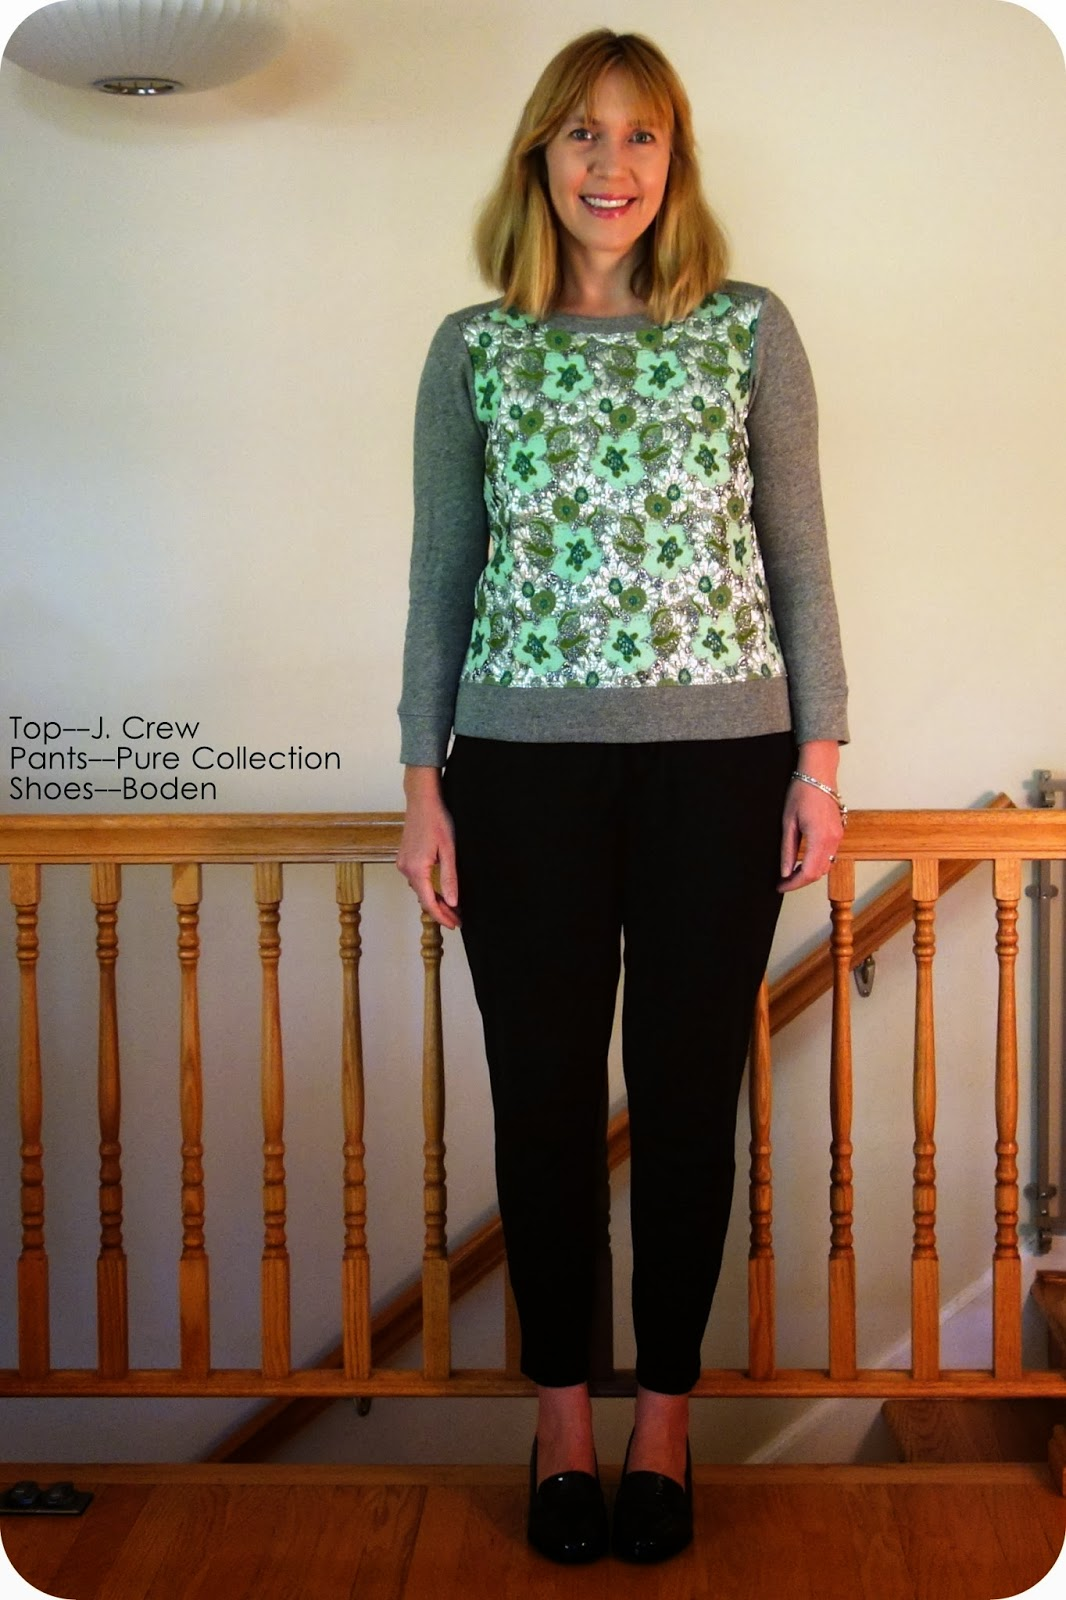 40fb3747c24 First up is the ootd portion followed by a quickie review for the J. Crew  Floral Sweatshirt and the Boden Heeled Loafer.